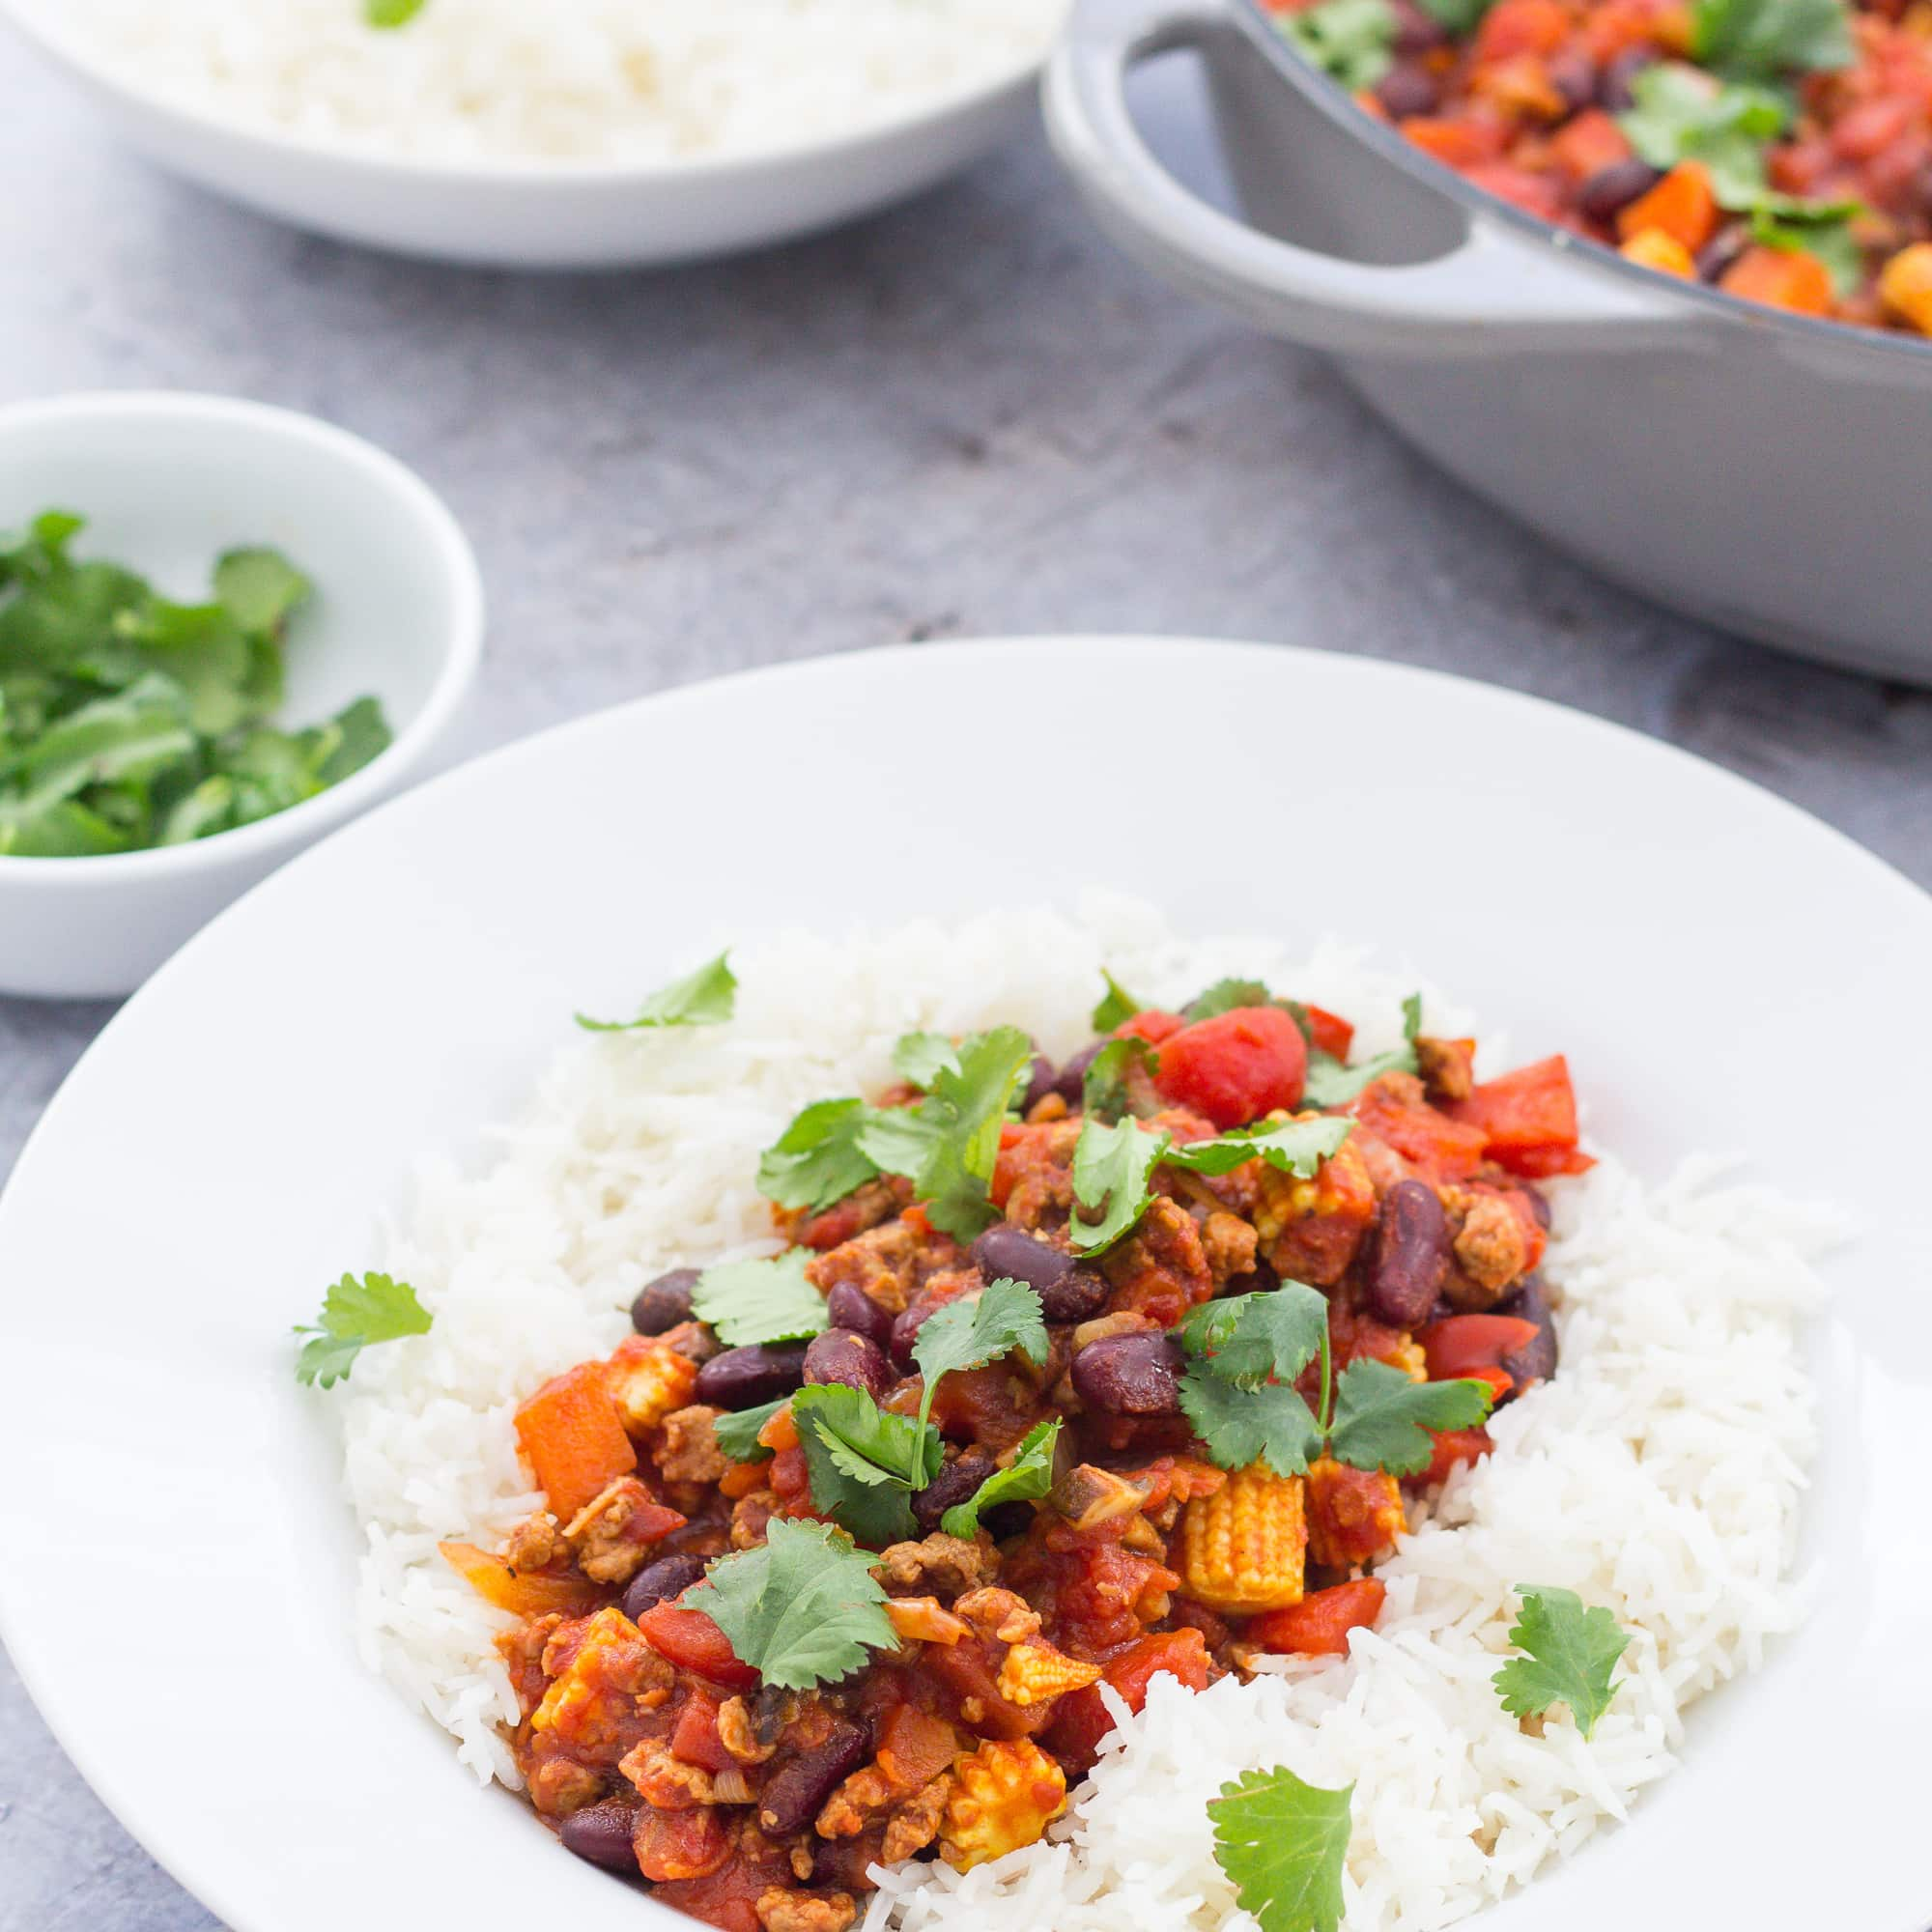 30 Stress Free Easy Camping Food Ideas Your Family Will: Easy Quorn Chilli Con Carne